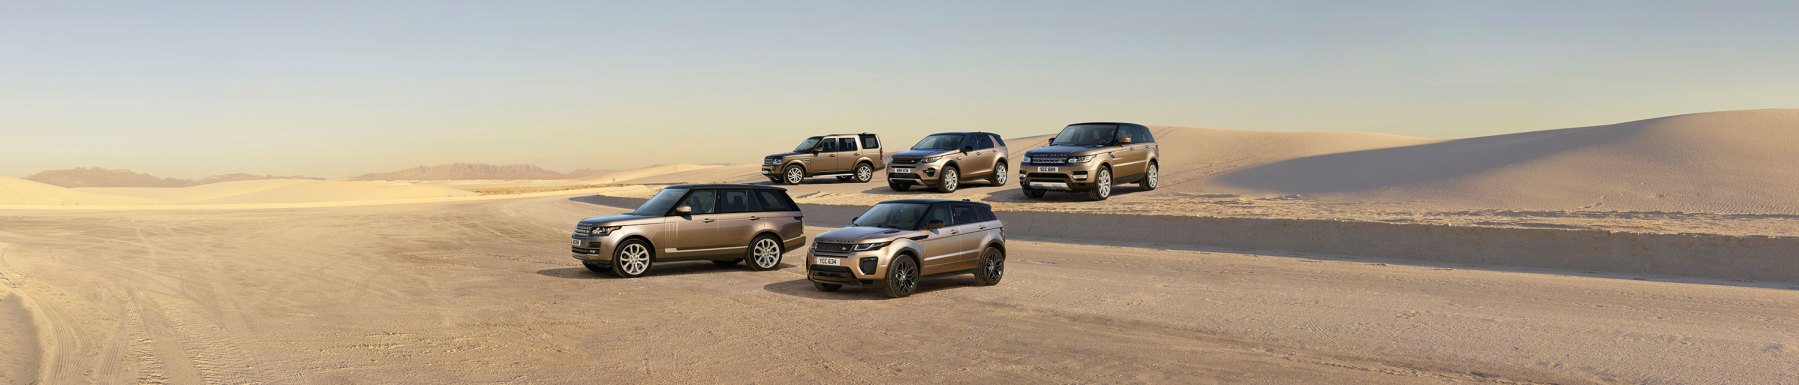 Land Rover Vehicles in desert Header Image